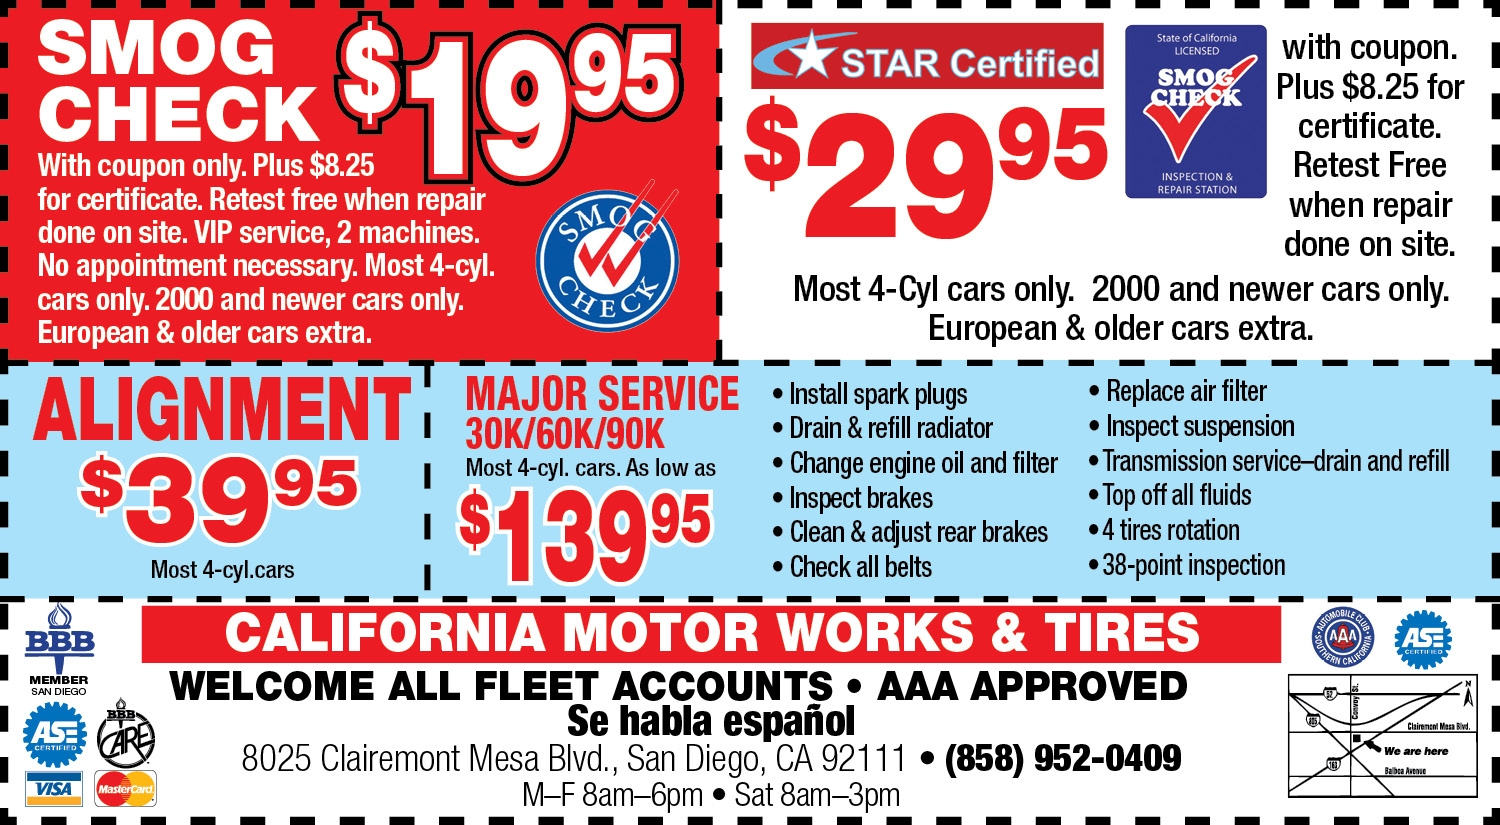 auto repair specials from california motor works & tires